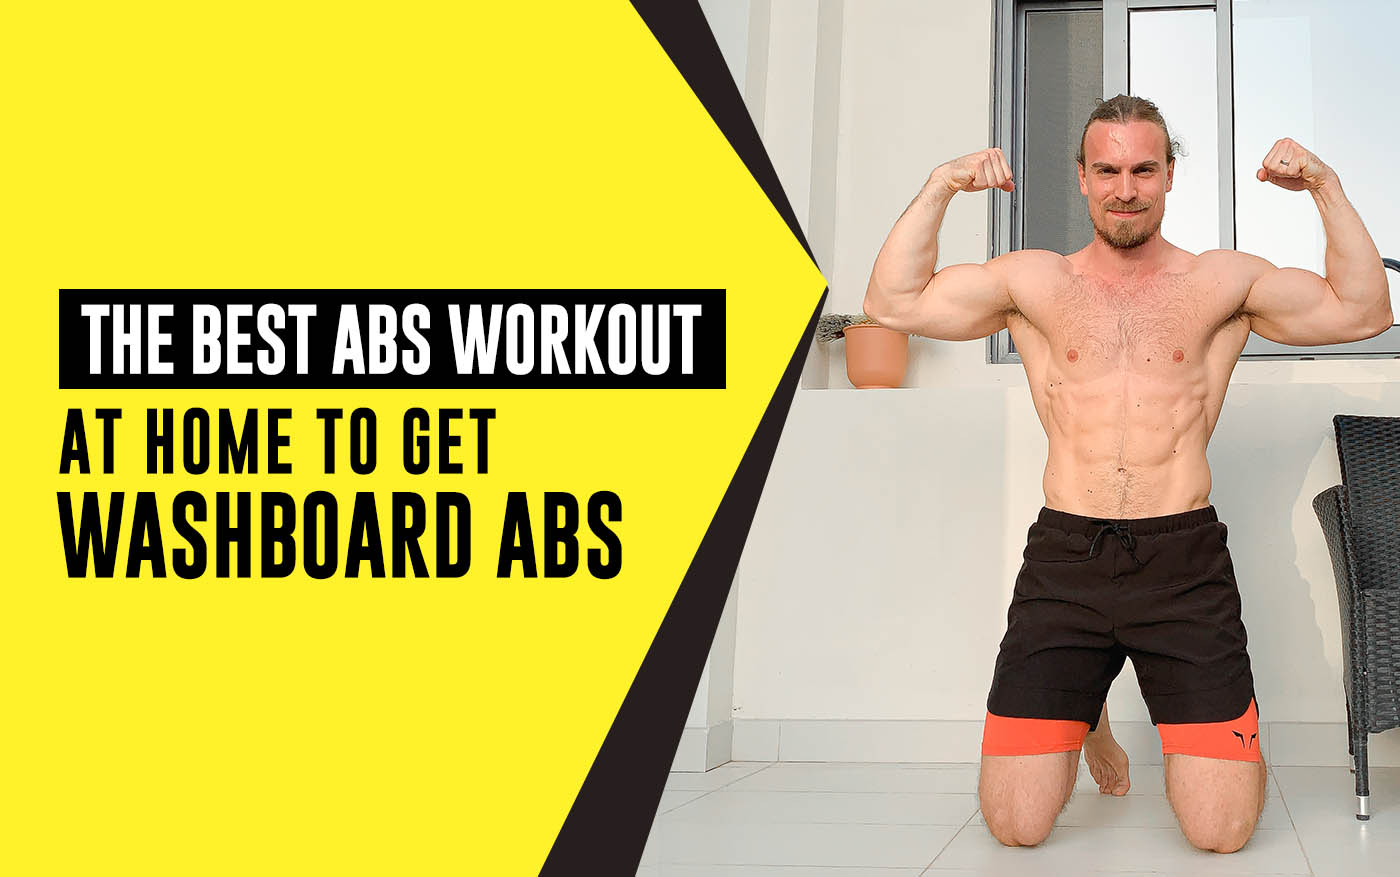 The Best Abs Workout At Home To Get Washboard Abs For Men Squat Wolf